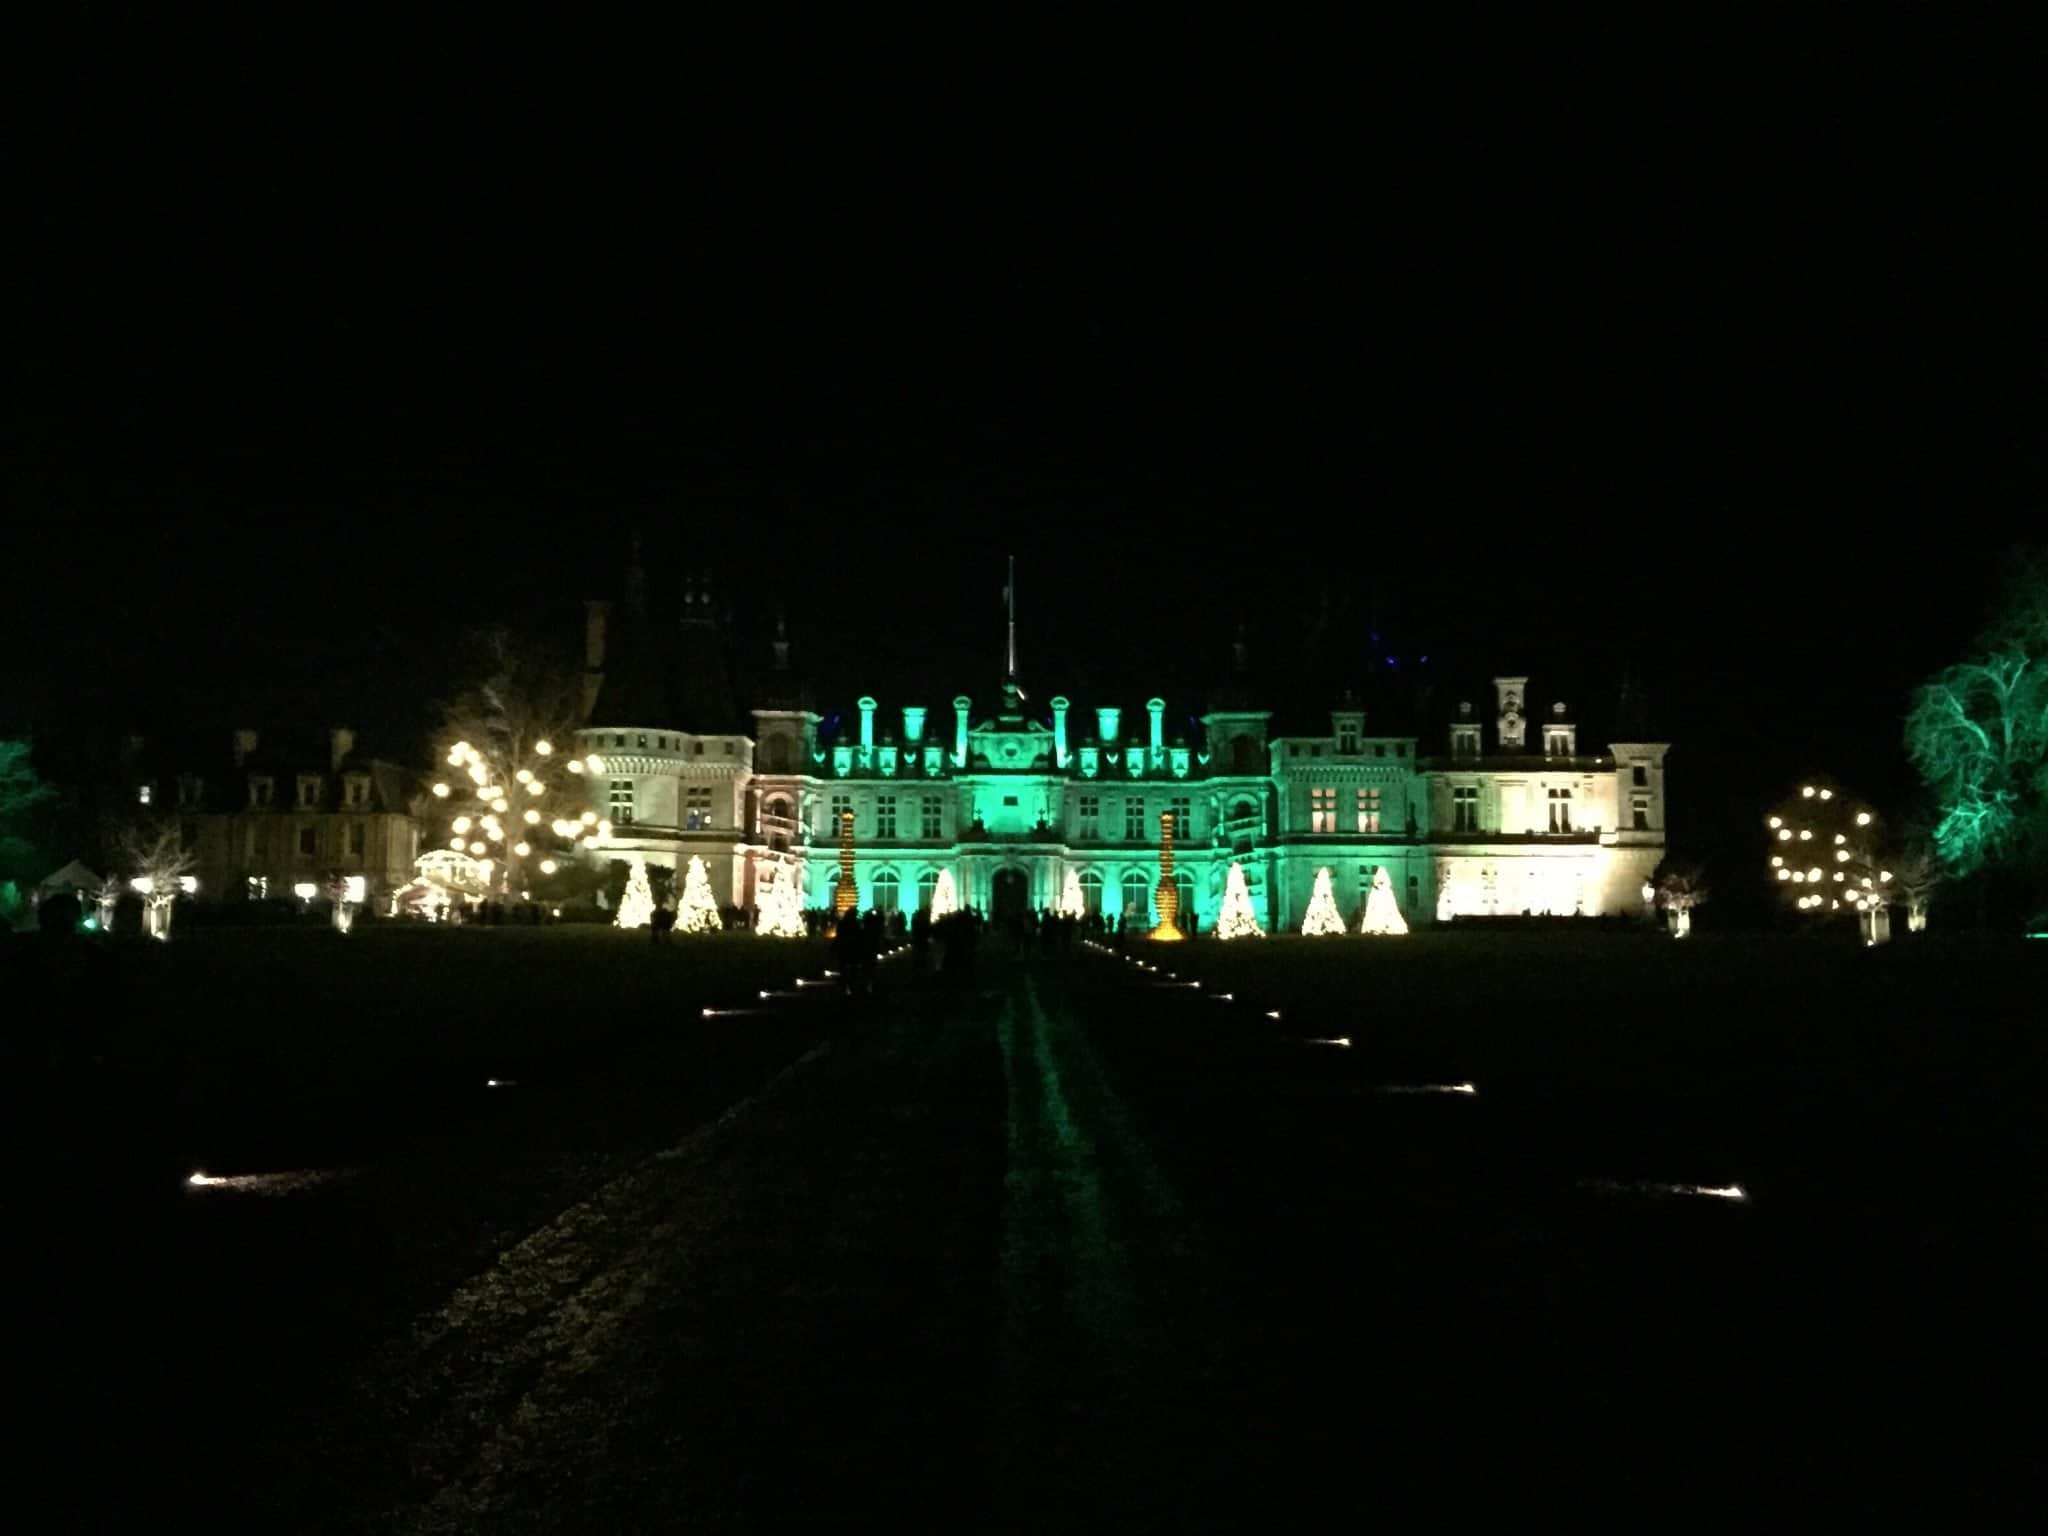 Waddesdon Manor lit up, by night